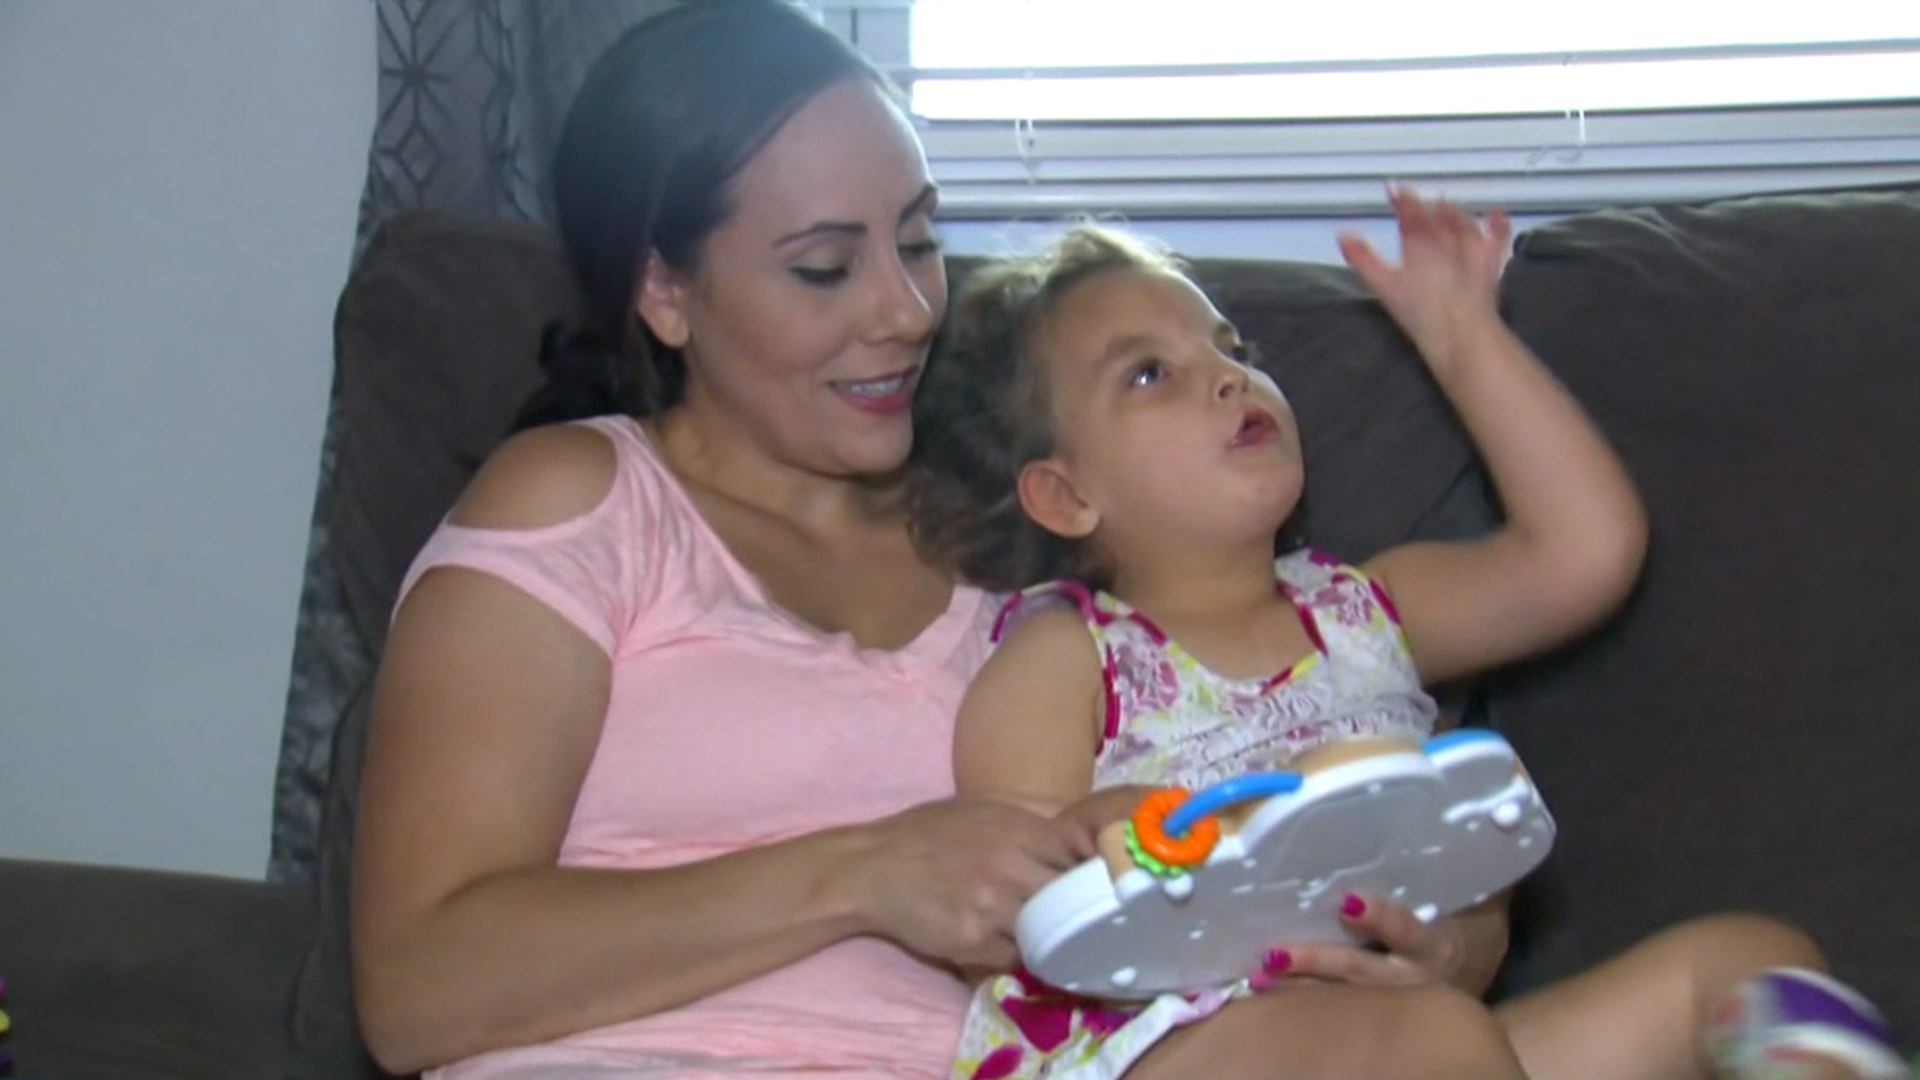 Texas couple considers divorce to help pay for daughter's health care costs